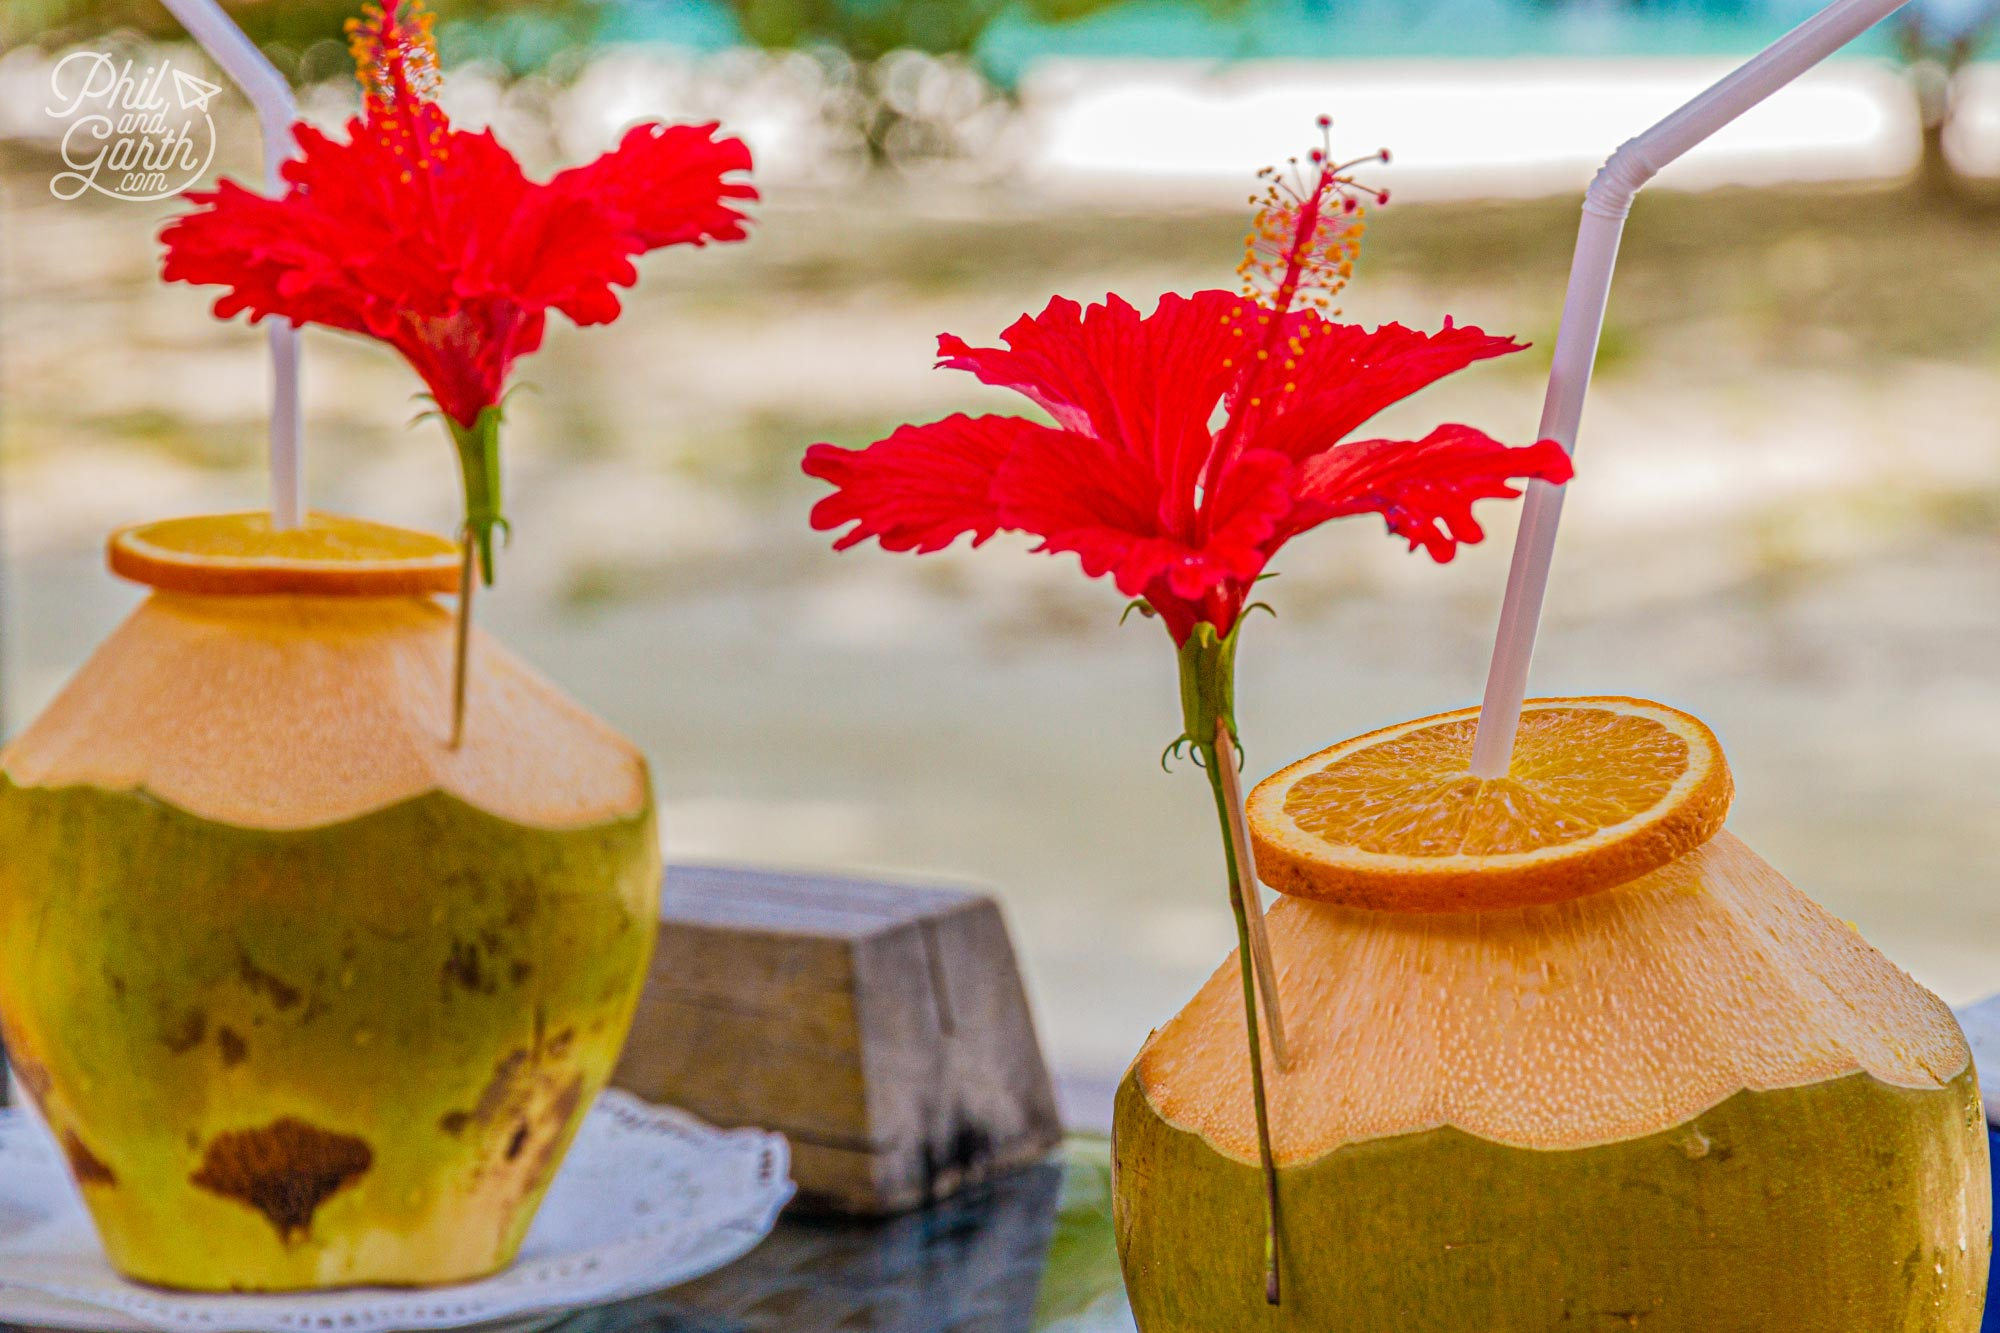 Thirst quenching coconut cocktails